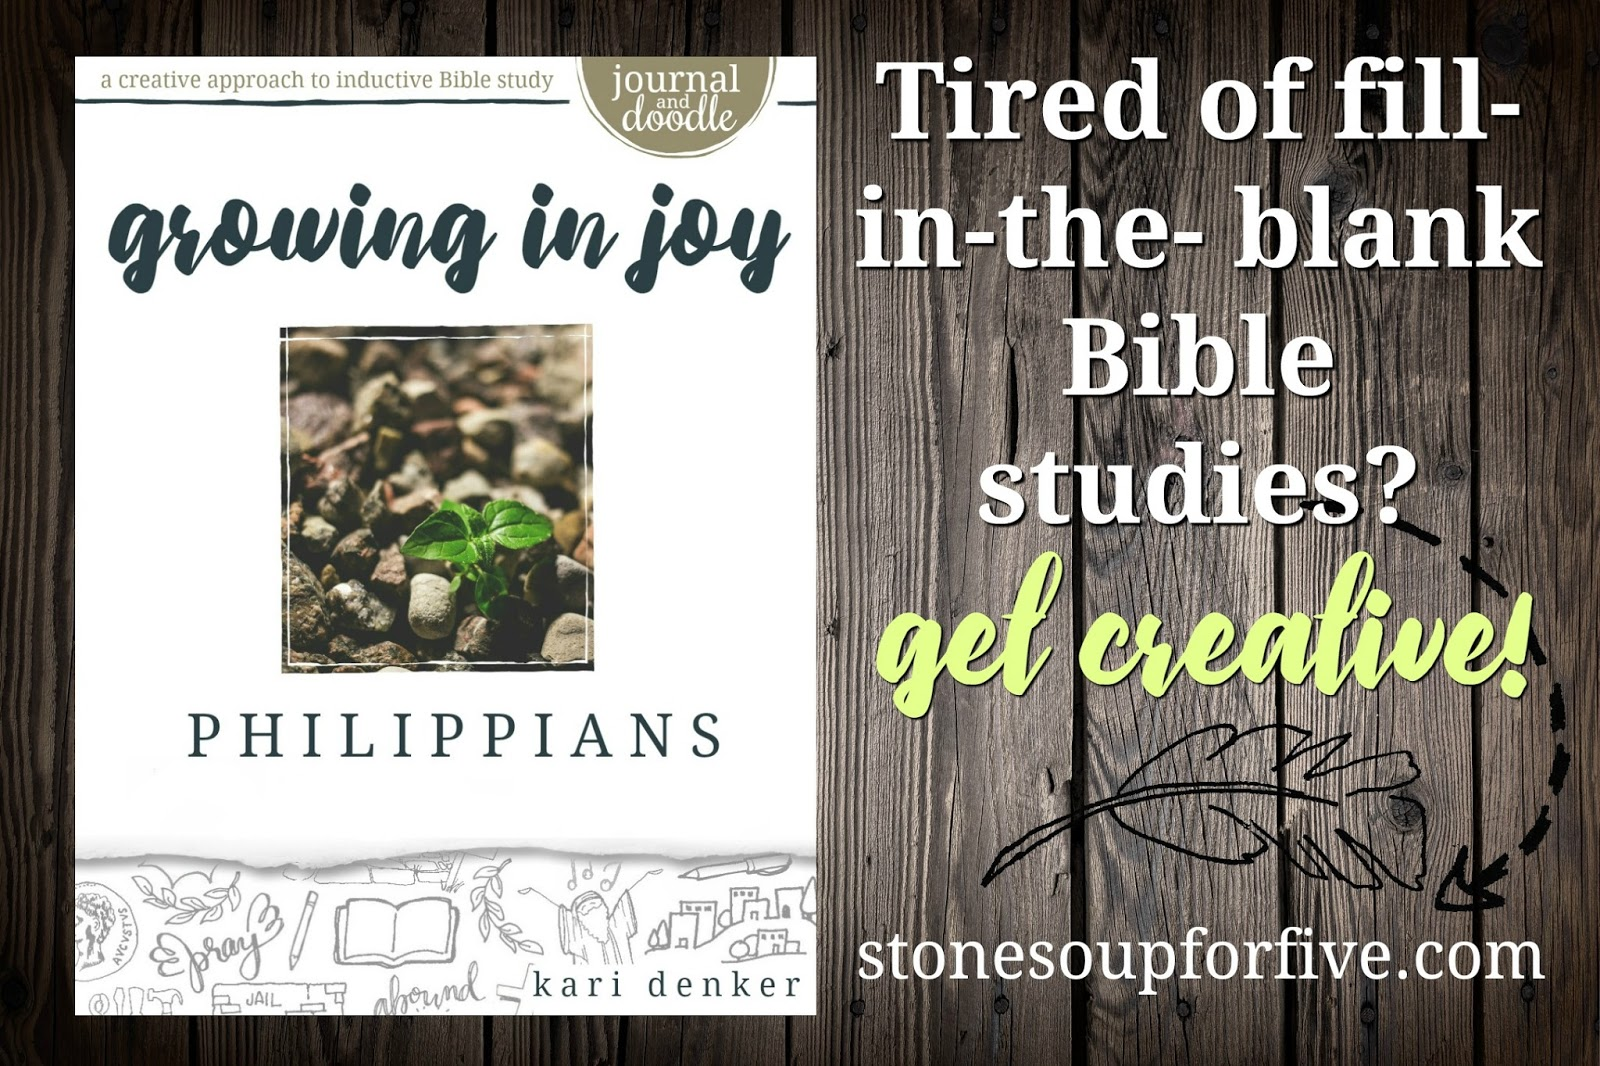 Stone Soup for Five: BIBLE STUDIES